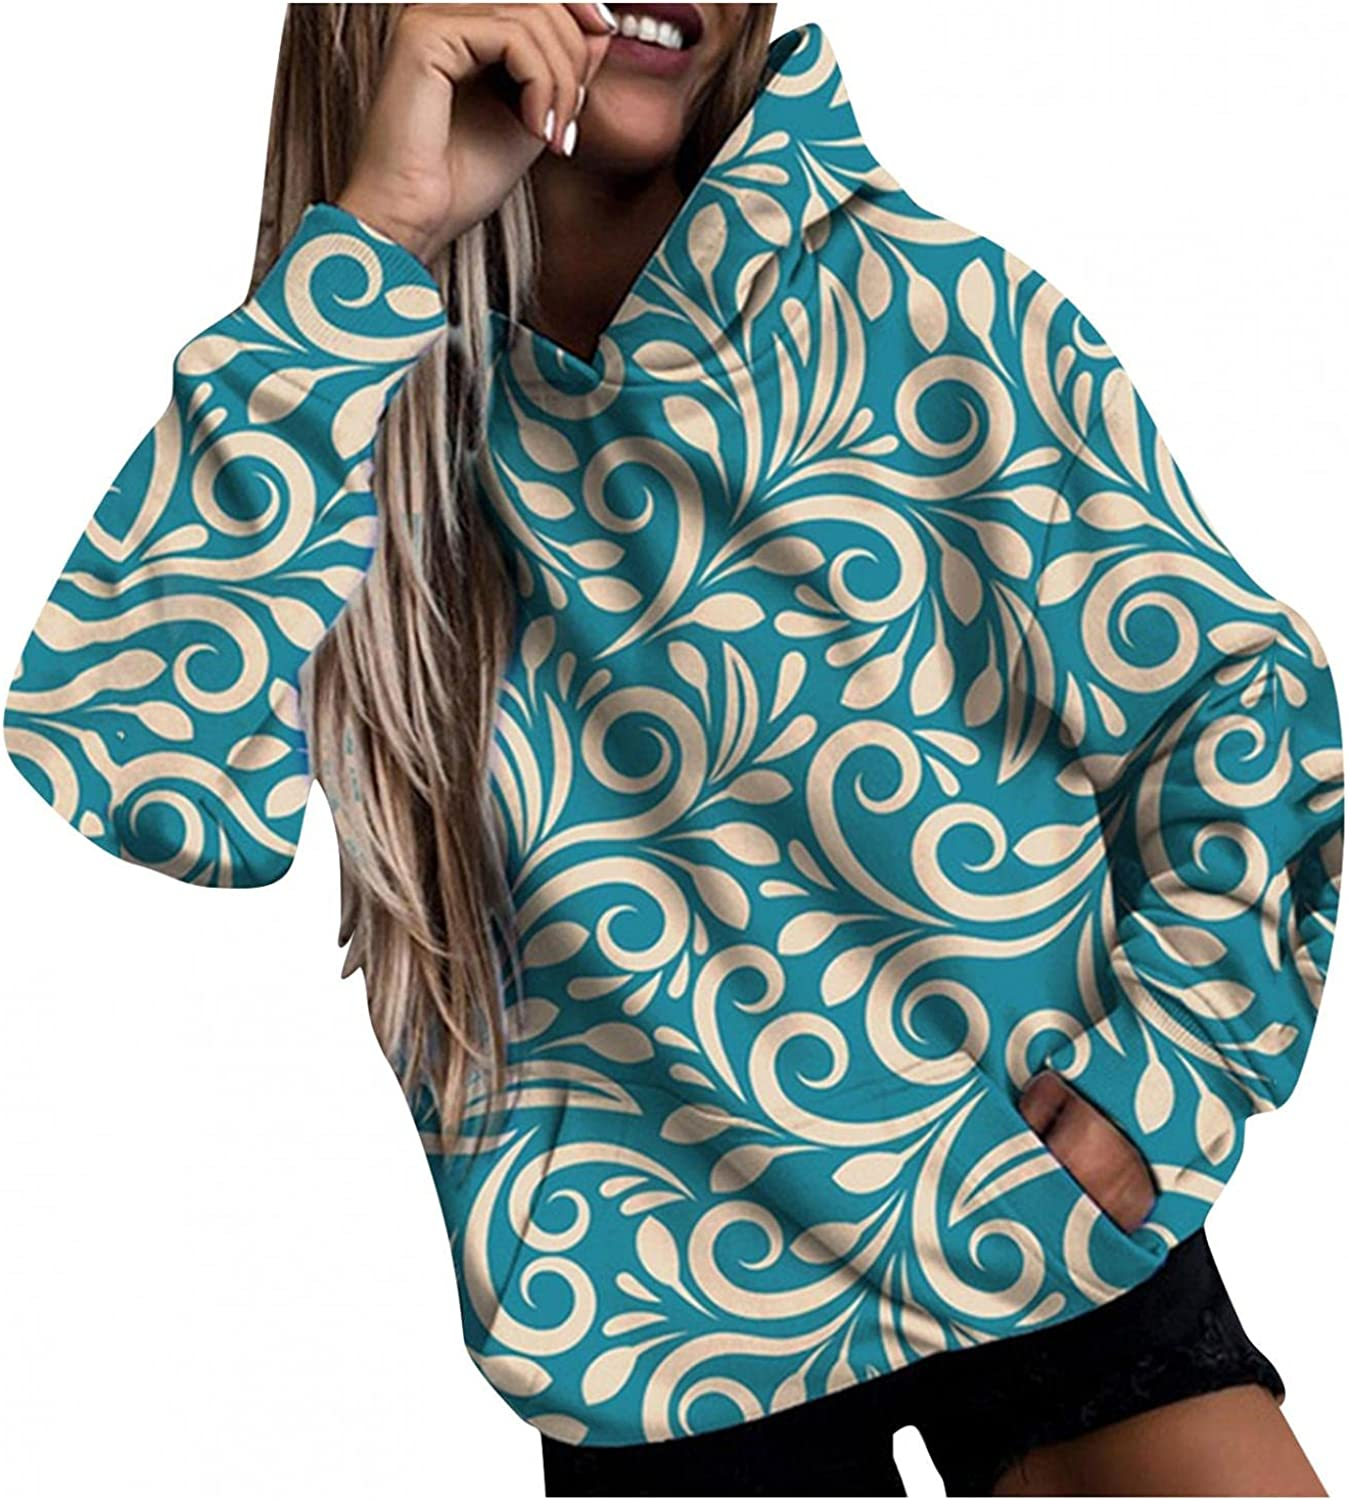 COMVALUE Hoodies for Women,Womens Pullover Sweatshirts Fashion Printed Pocket Long Sleeve Casual Tops